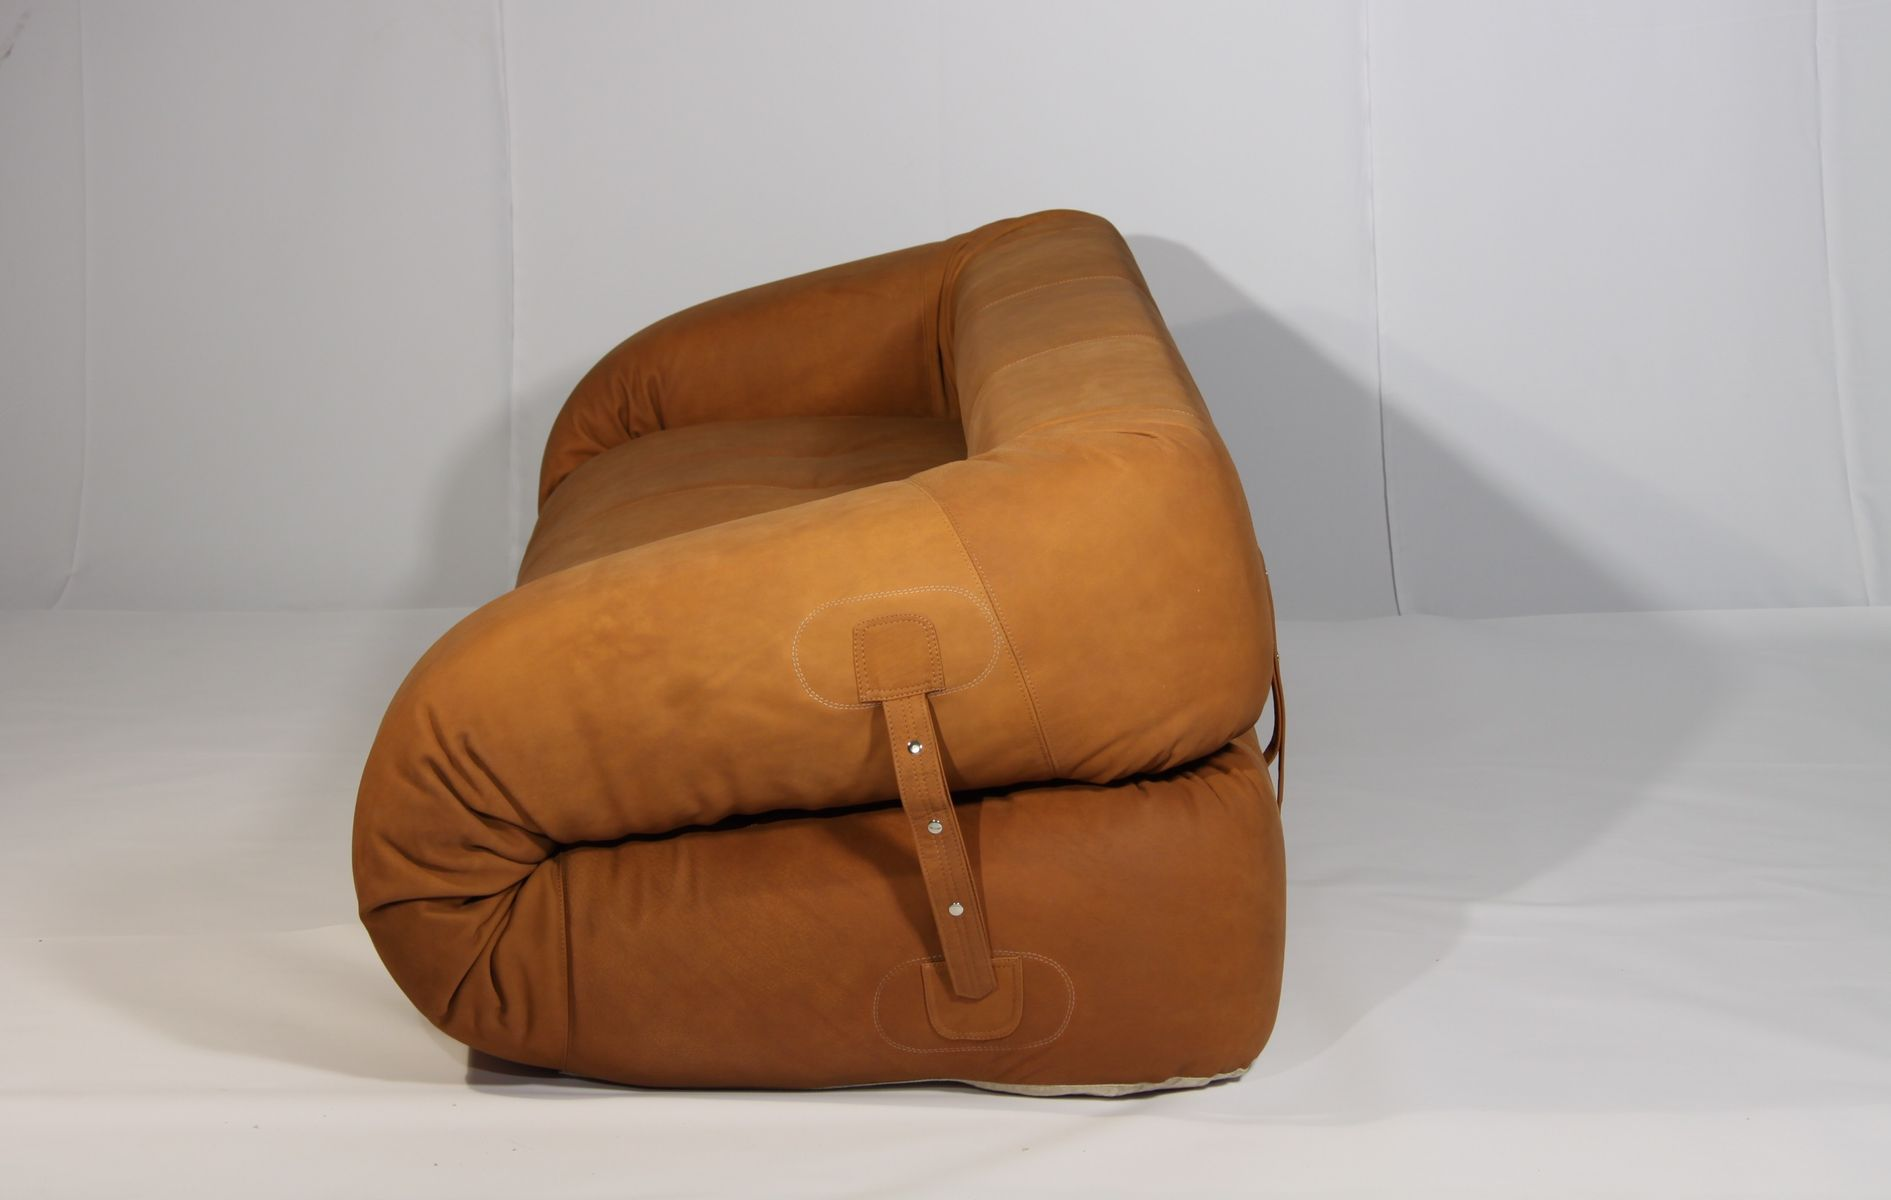 anfibio leather sofa bed fabric modular sydney by alessandro becchi for giovannetti